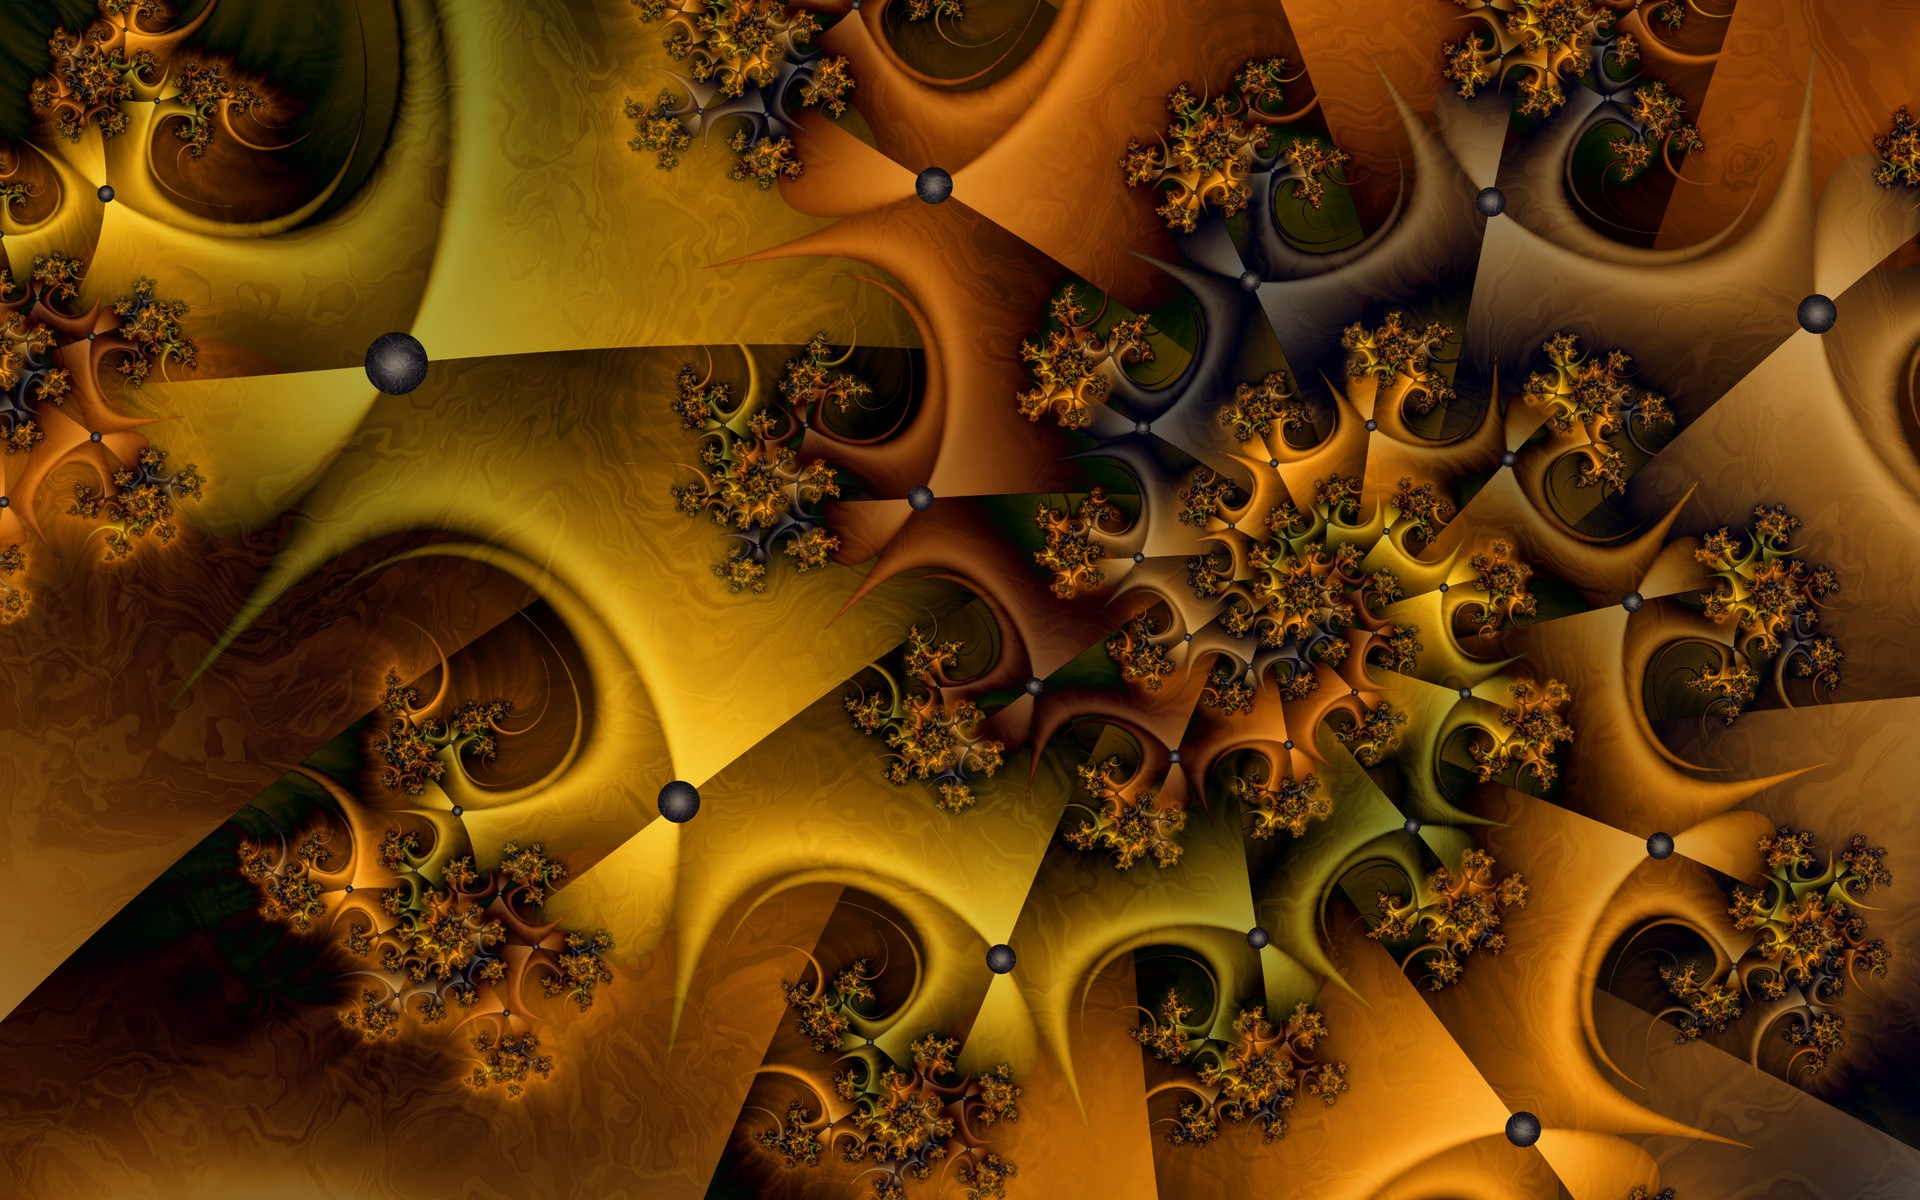 Cute Animated Wallpapers For Cell Phones Fractal Wallpapers Hd Wallpapers Pulse